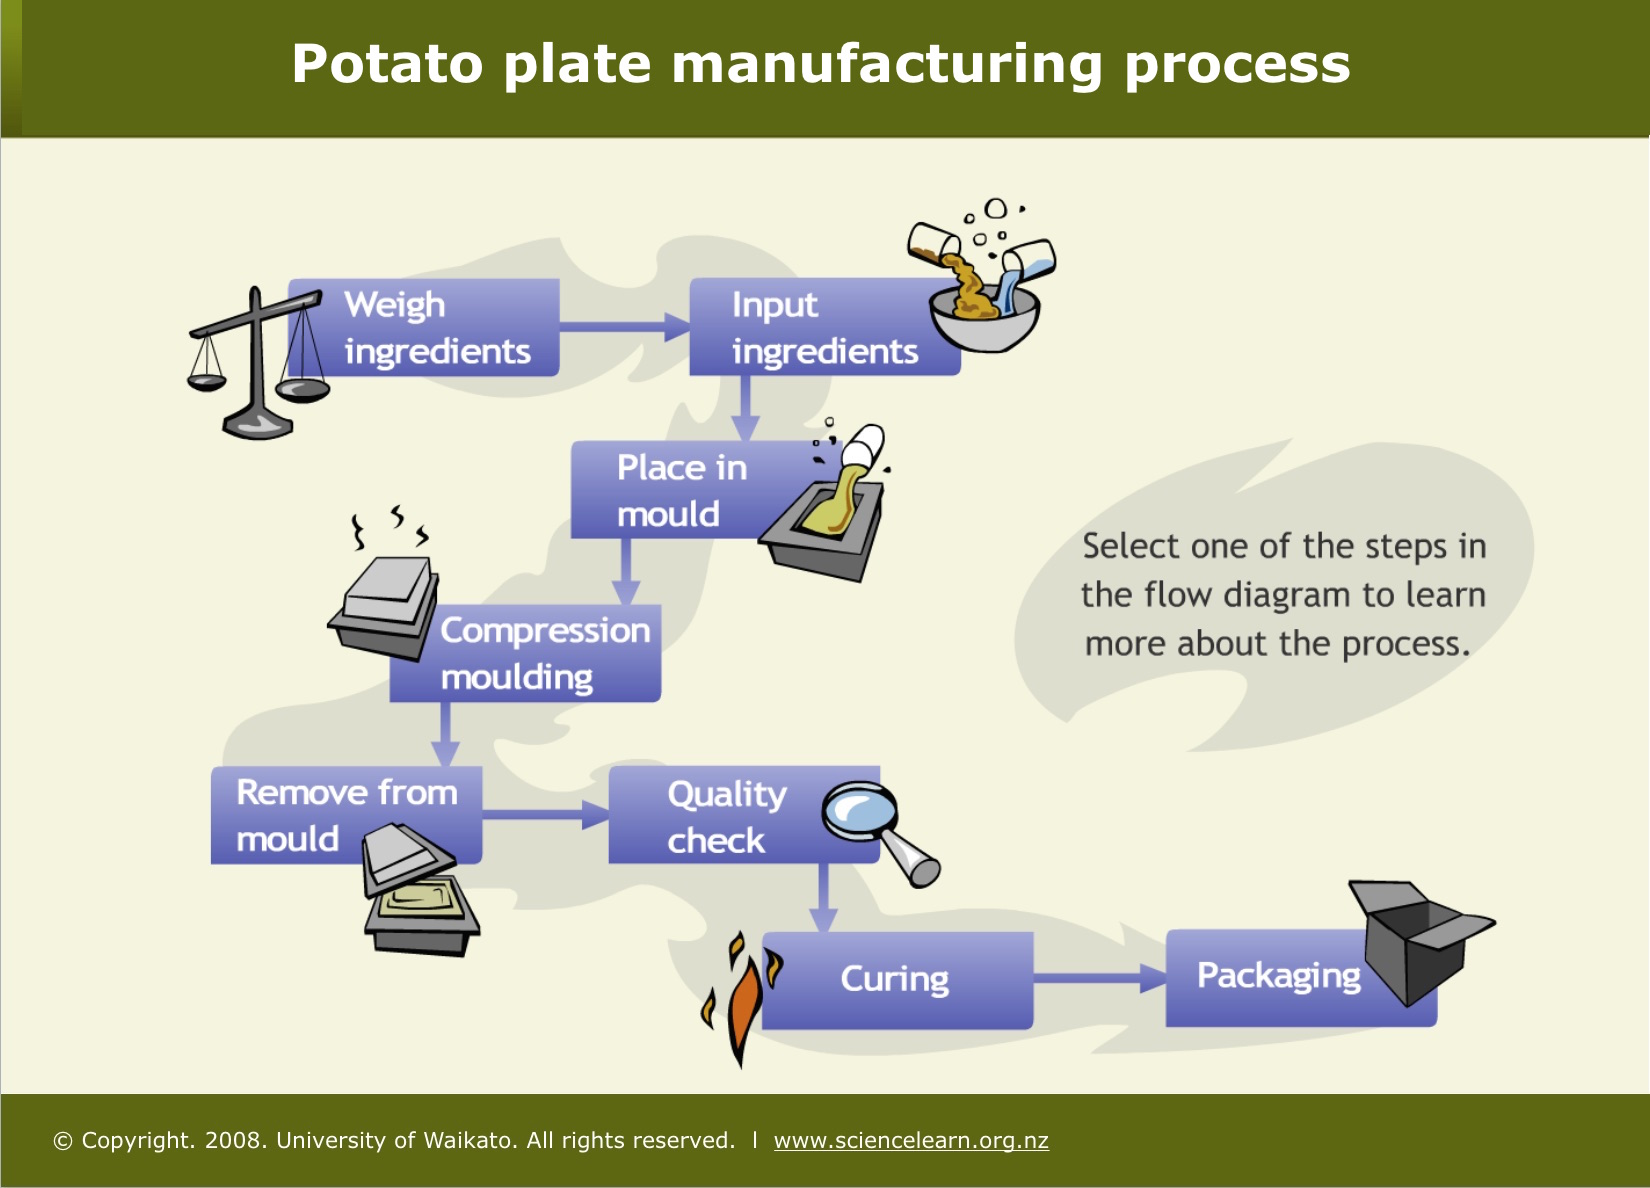 Potato plate manufacturing process science learning hub potatopak now rebranded as earth pack makes potato plates at a factory in blenheim new zealand click on the flow diagram to see the steps involved in nvjuhfo Gallery